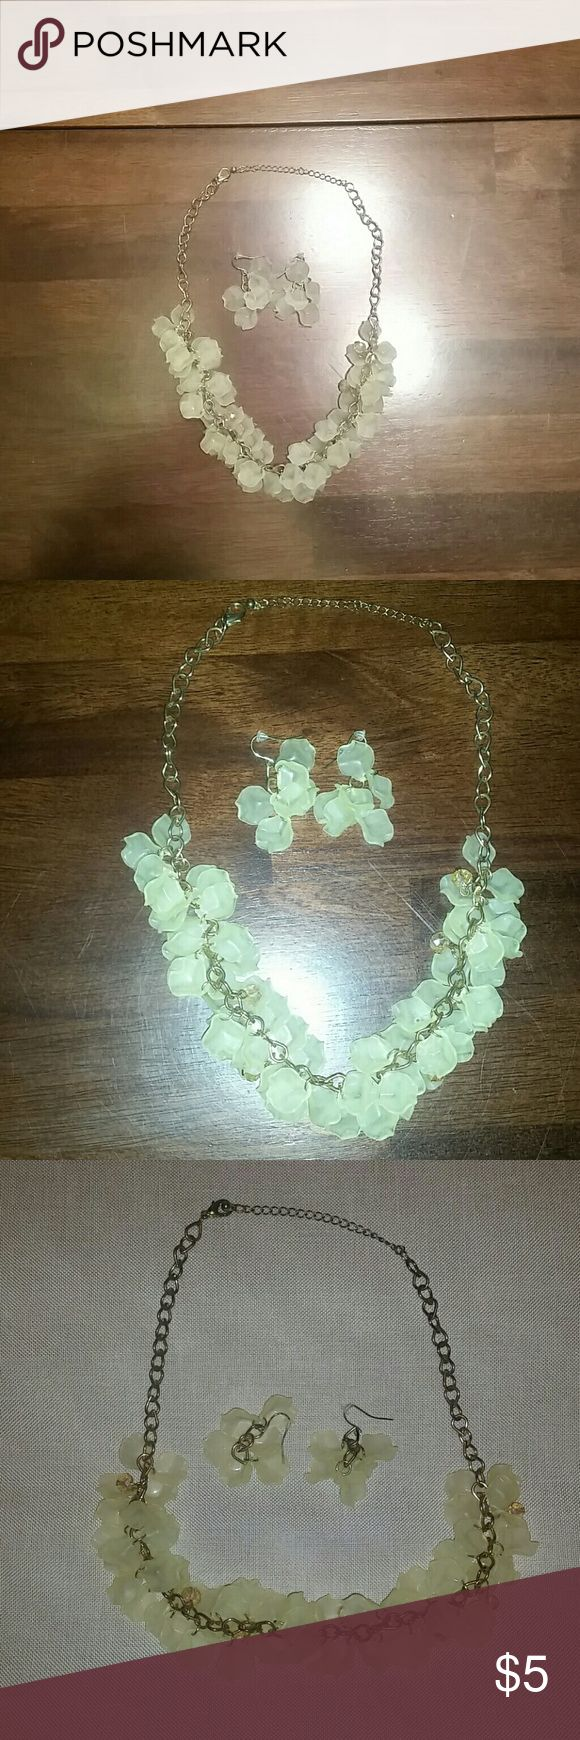 Charming Charlie yellow necklace and earring set Charming Charlie yellow necklace and earring set.  Worn once. Charming Charlie Jewelry Necklaces